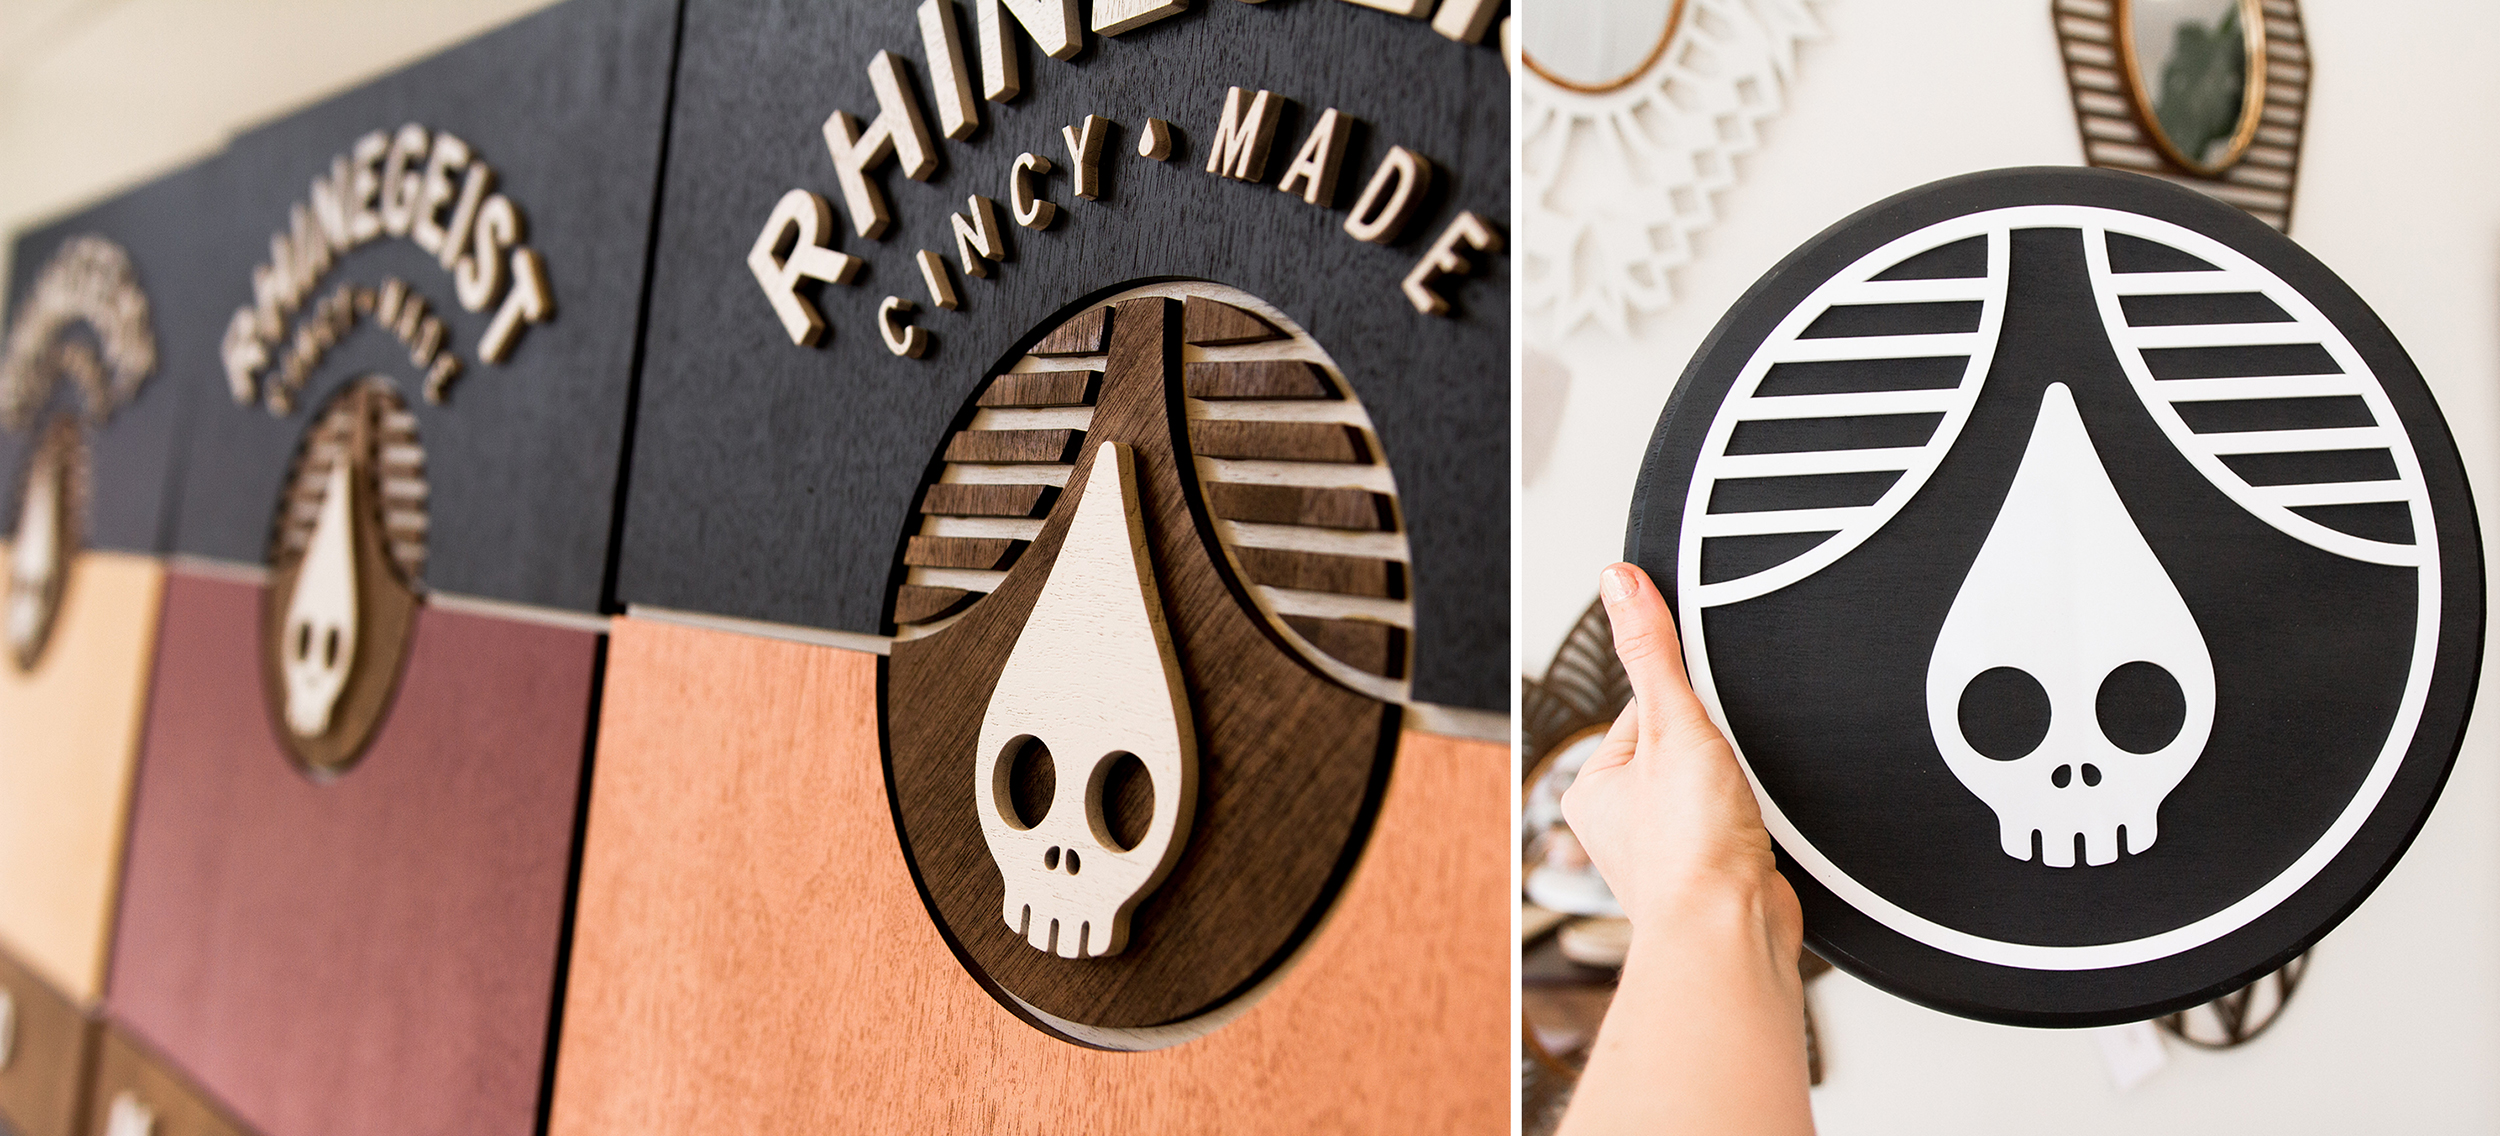 Cincinnati-based Lucca laser cuts 18 x 24-in. signs out of maple plywood project panels for couples who host receptions at the Rhinegeist Brewery. The signs are customized to the couples' colors, date and name, and serve as a keepsake long after the wedding is over.